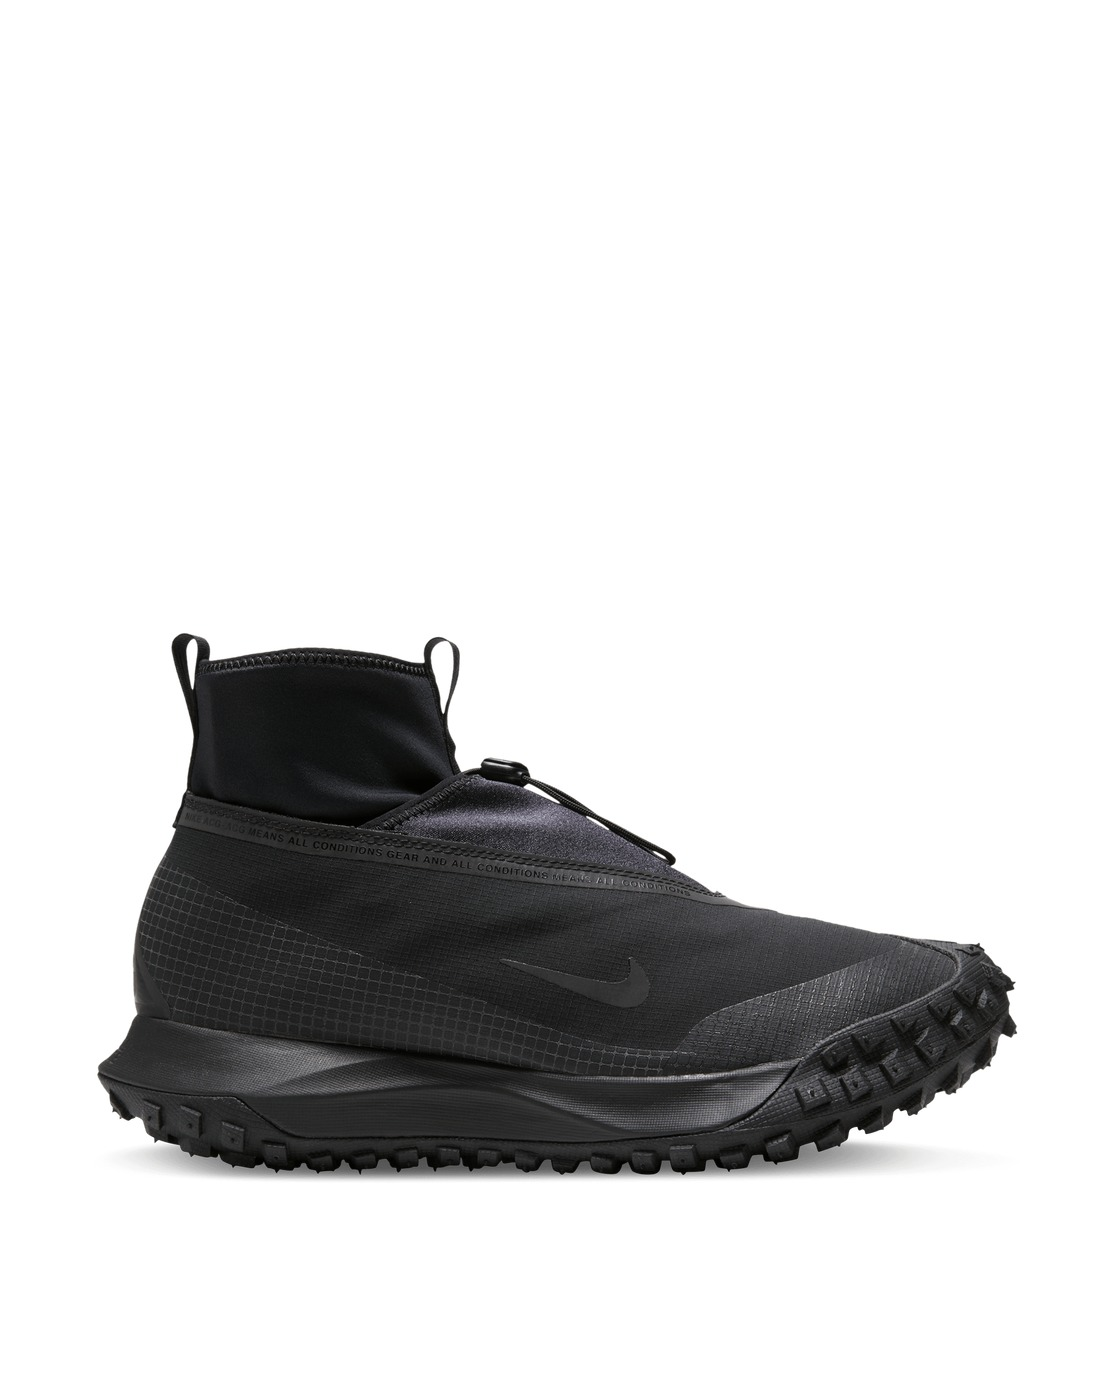 Nike Special Project Mountain Fly Gore Tex Sneakers Black/Dark Grey